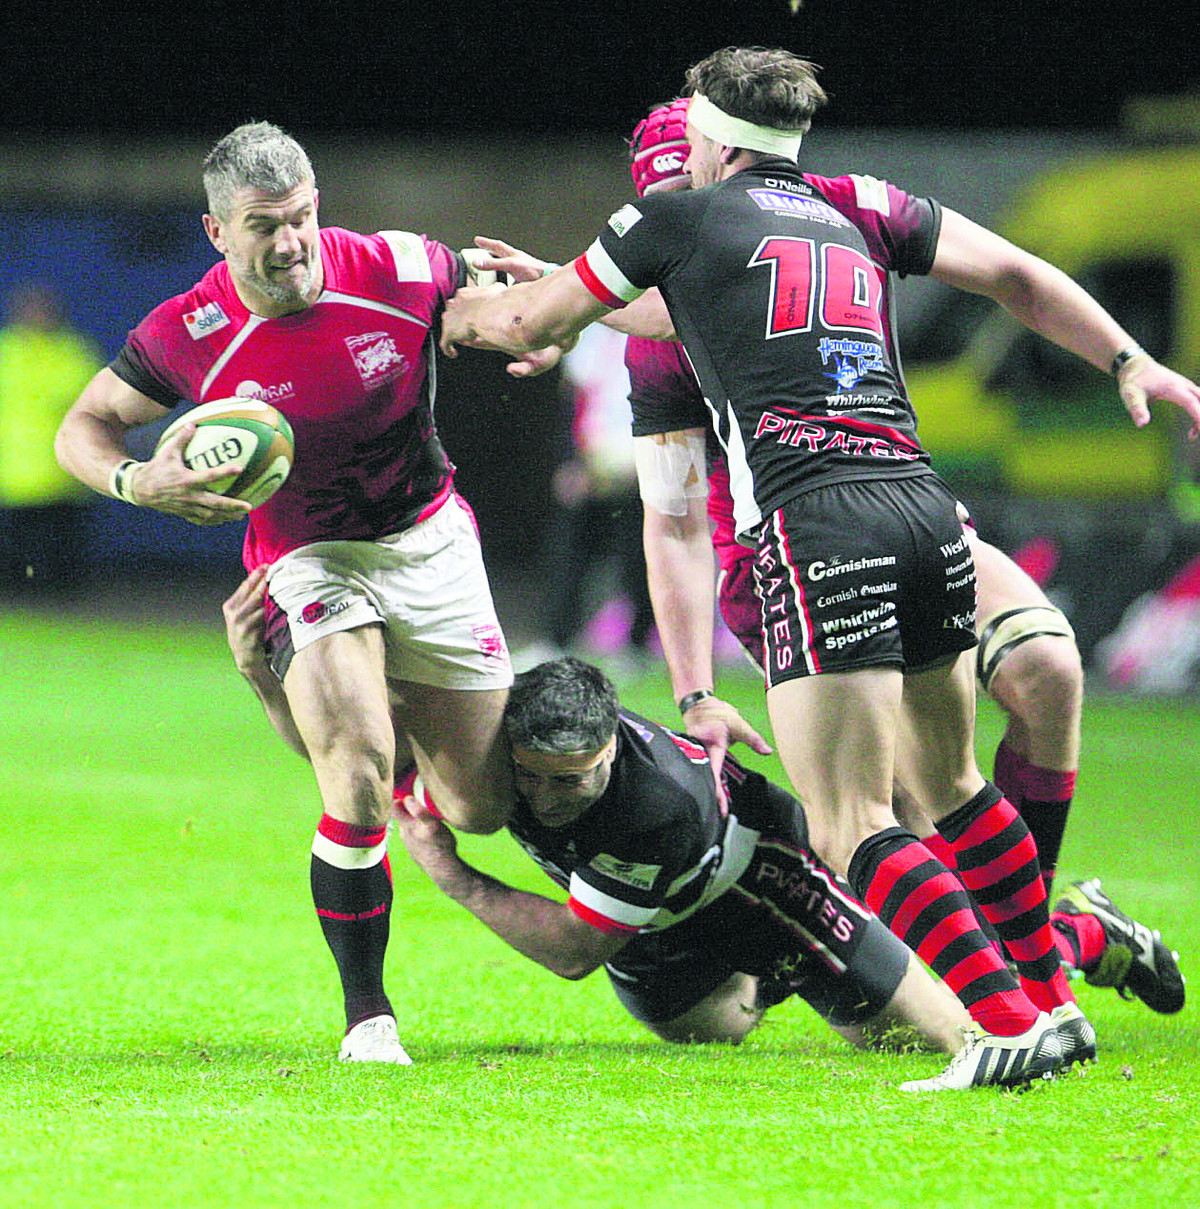 Tom May has recovered from injury has leads London Welsh a